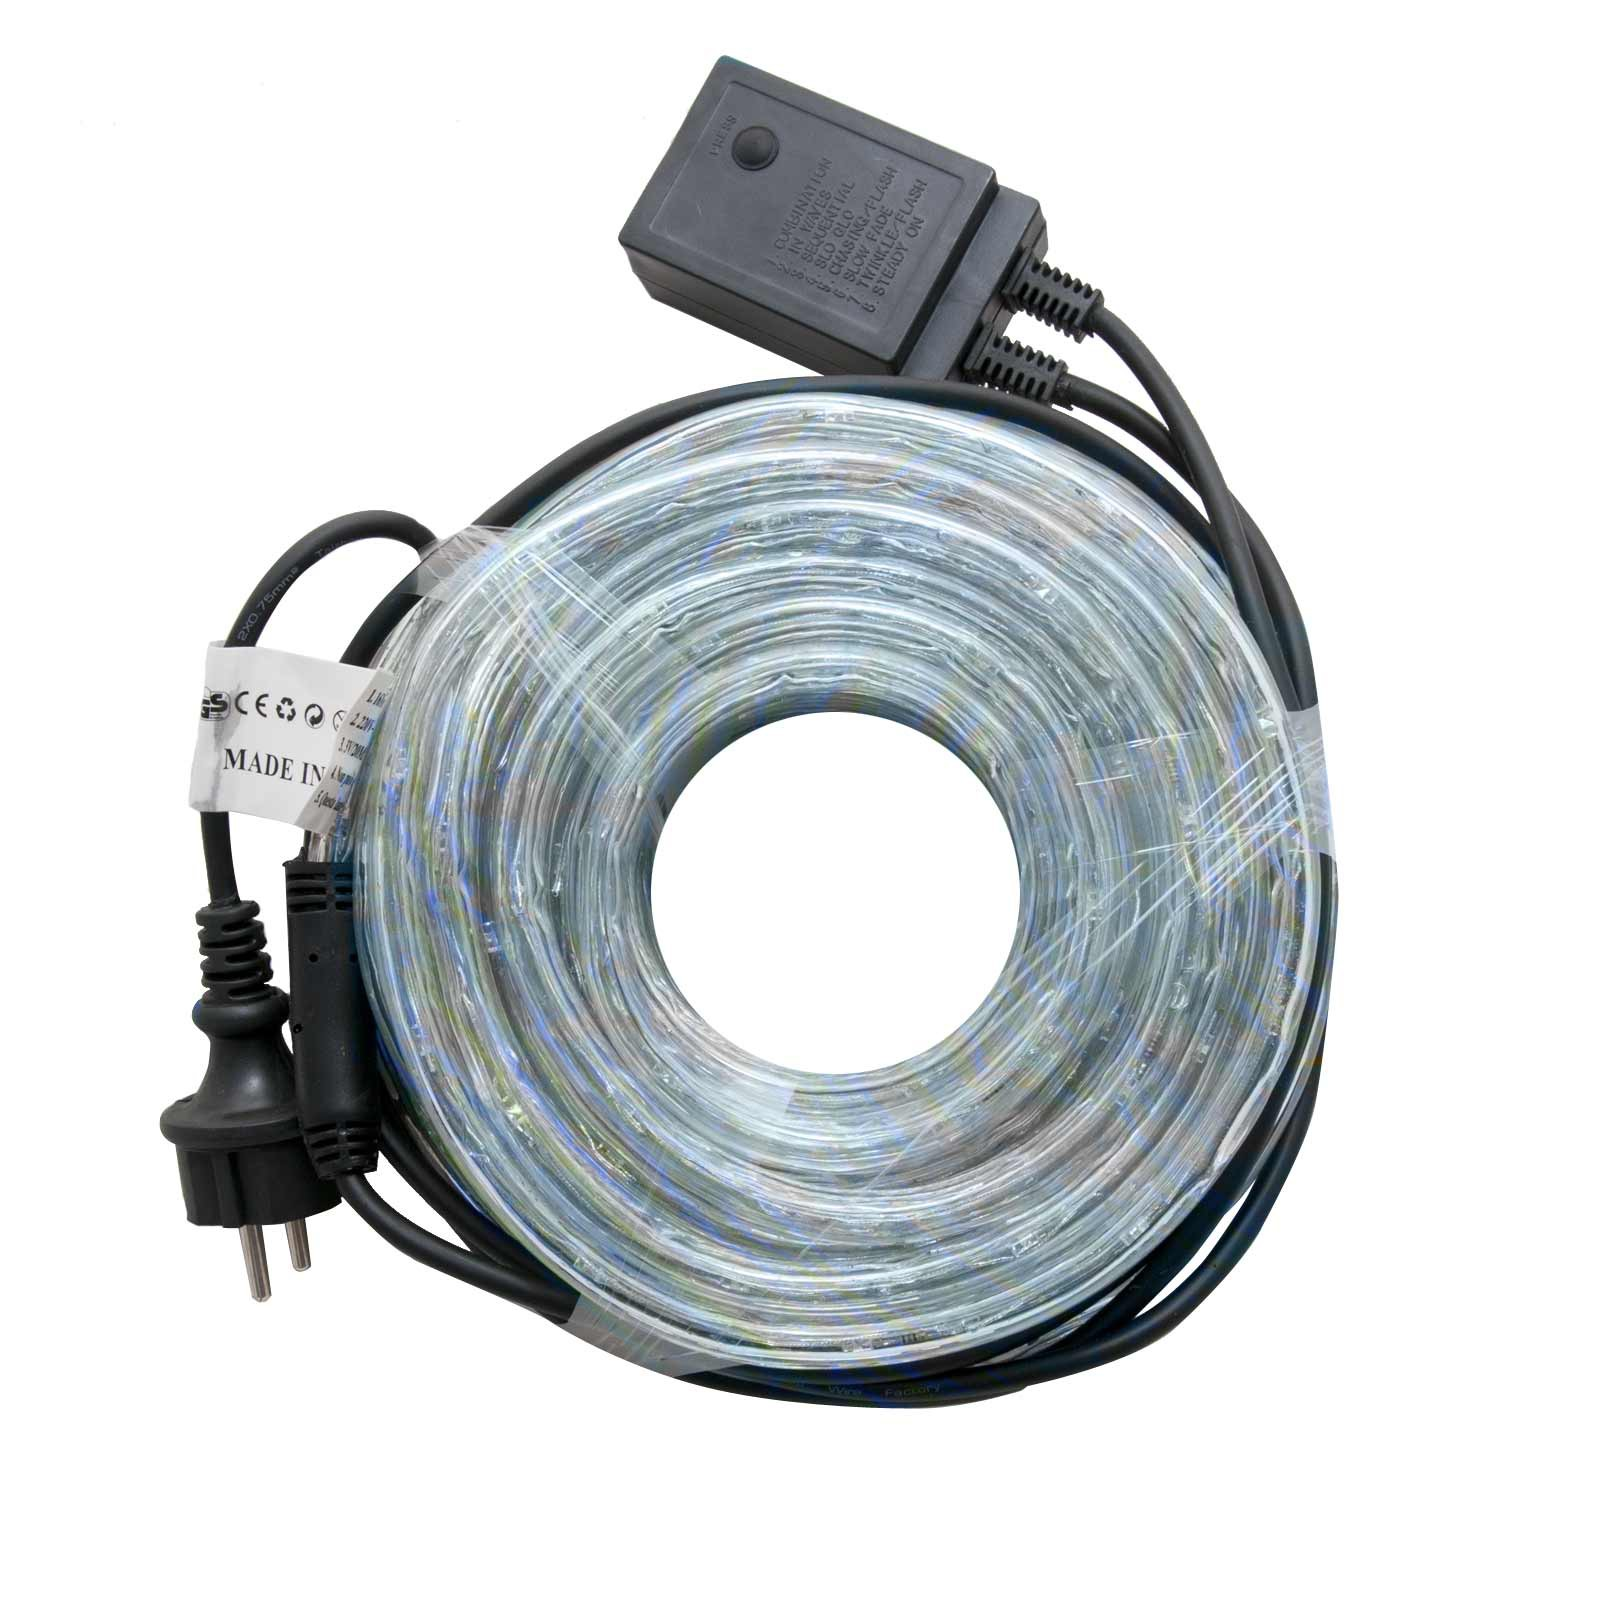 Tubo luminoso 10m luci di natale luce fredda a led 8 for Tubi luminosi led